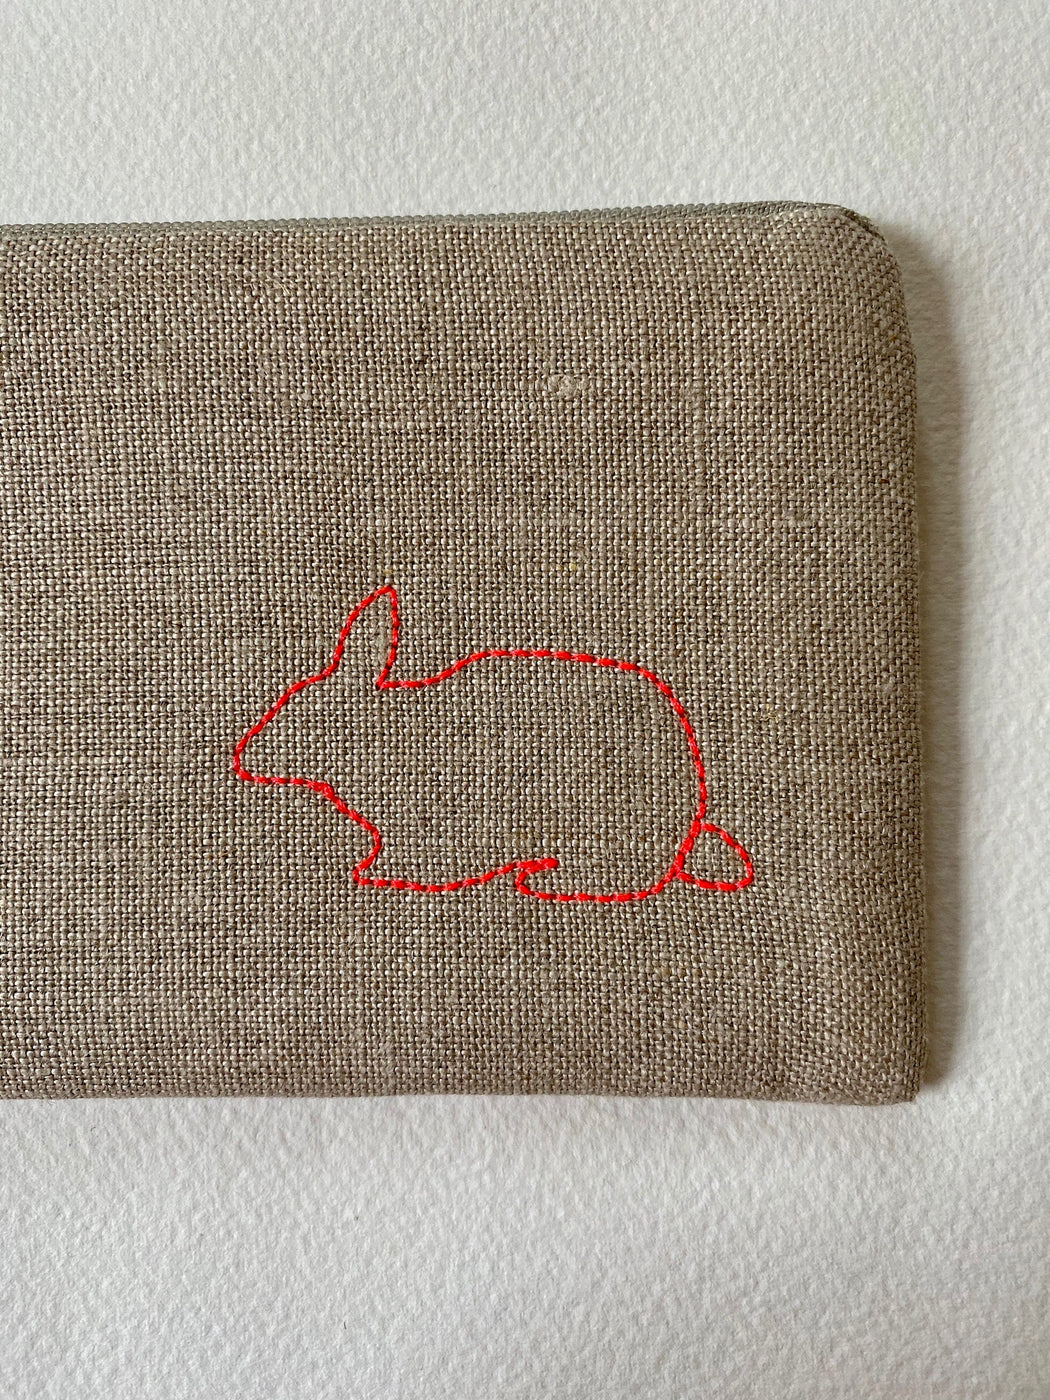 """Bunny"" Embroidered Pouch"